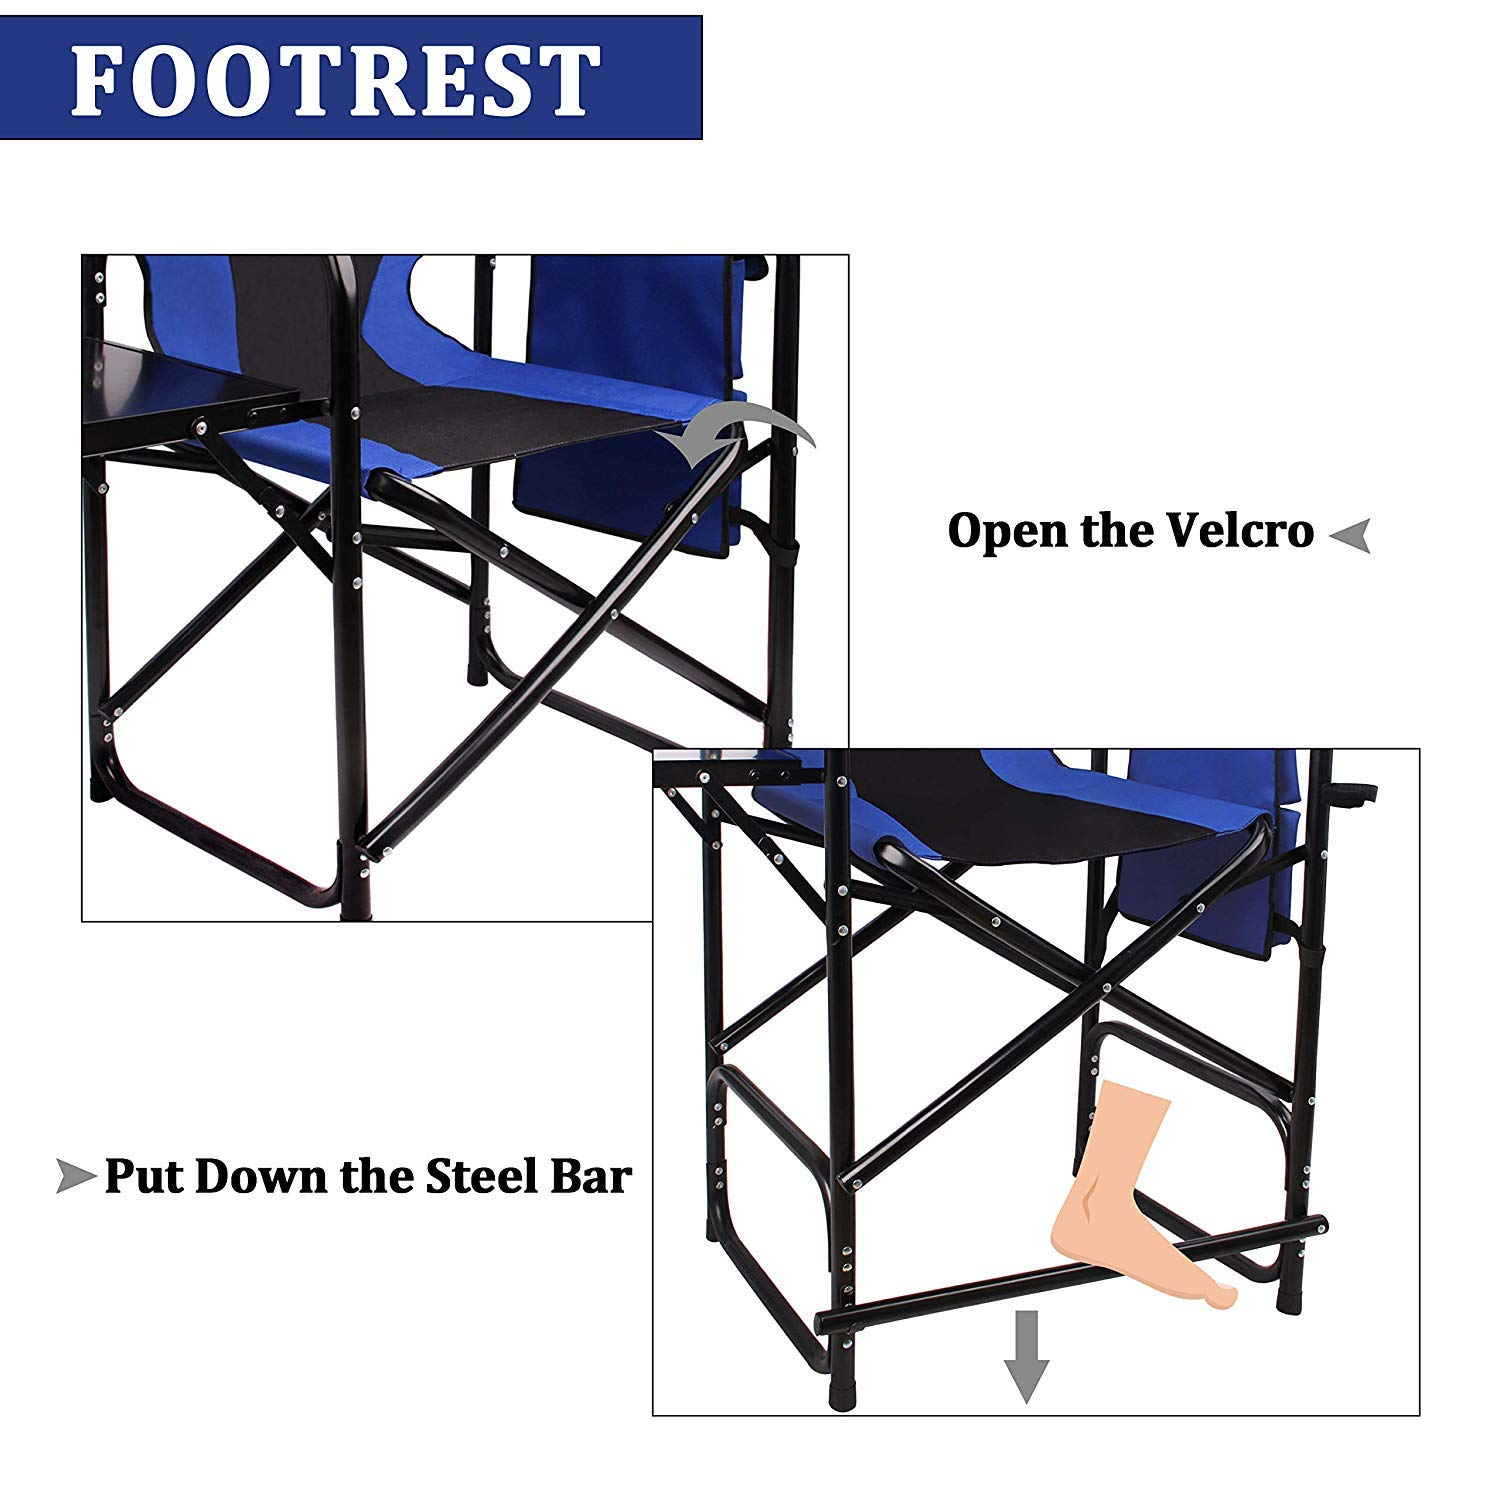 Supports 300LBS Makeup Artist Collapsible Chair with Side Table Storage Bag Footrest Shaddock Tall Directors Chair Folding Camping Chair Blue